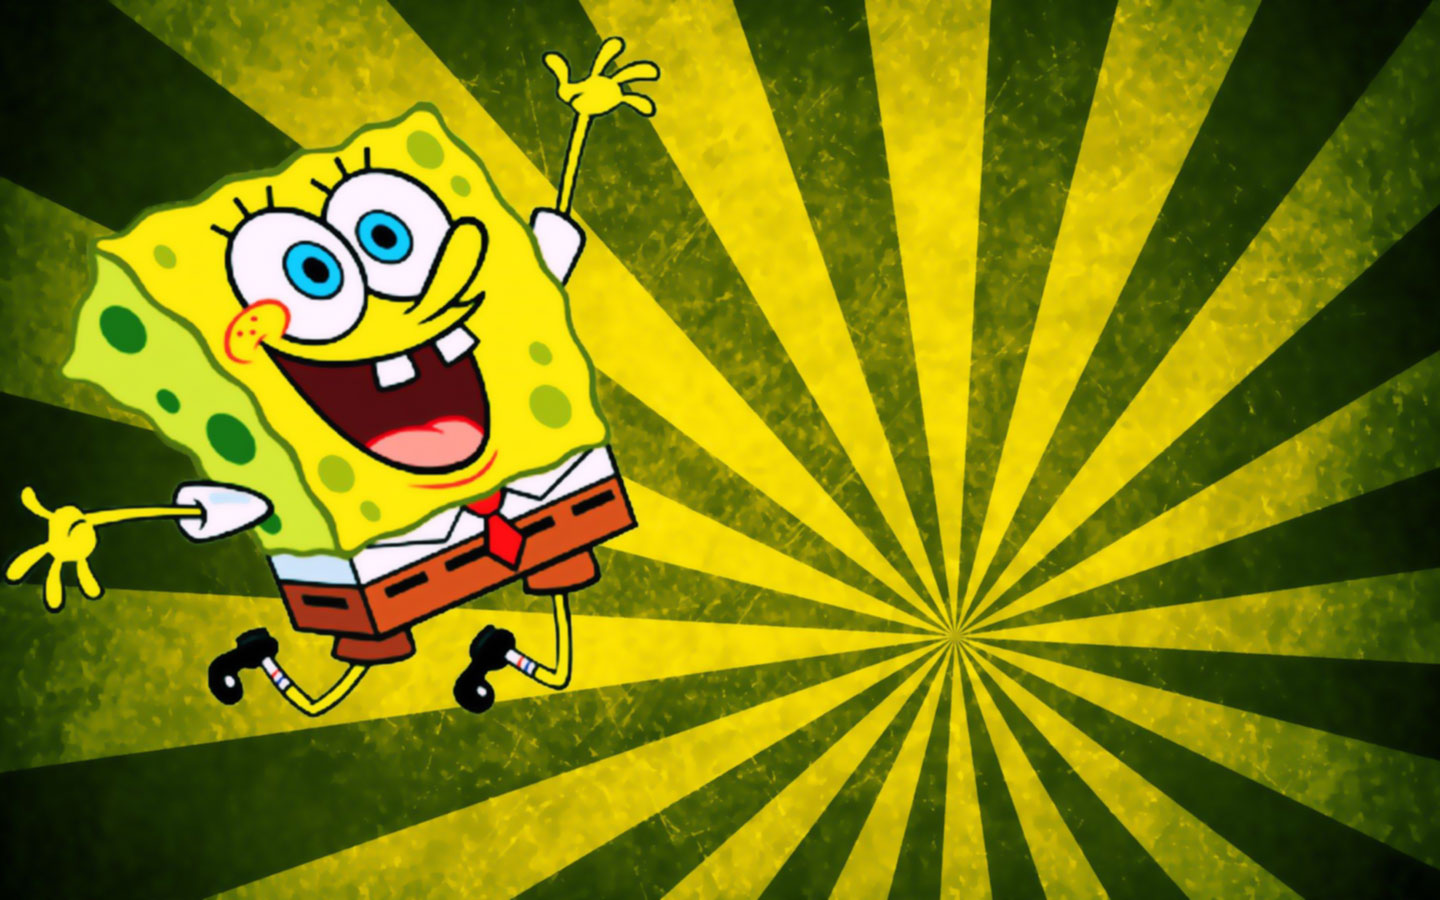 SpongeBob SquarePants wallpapers HD green stripped